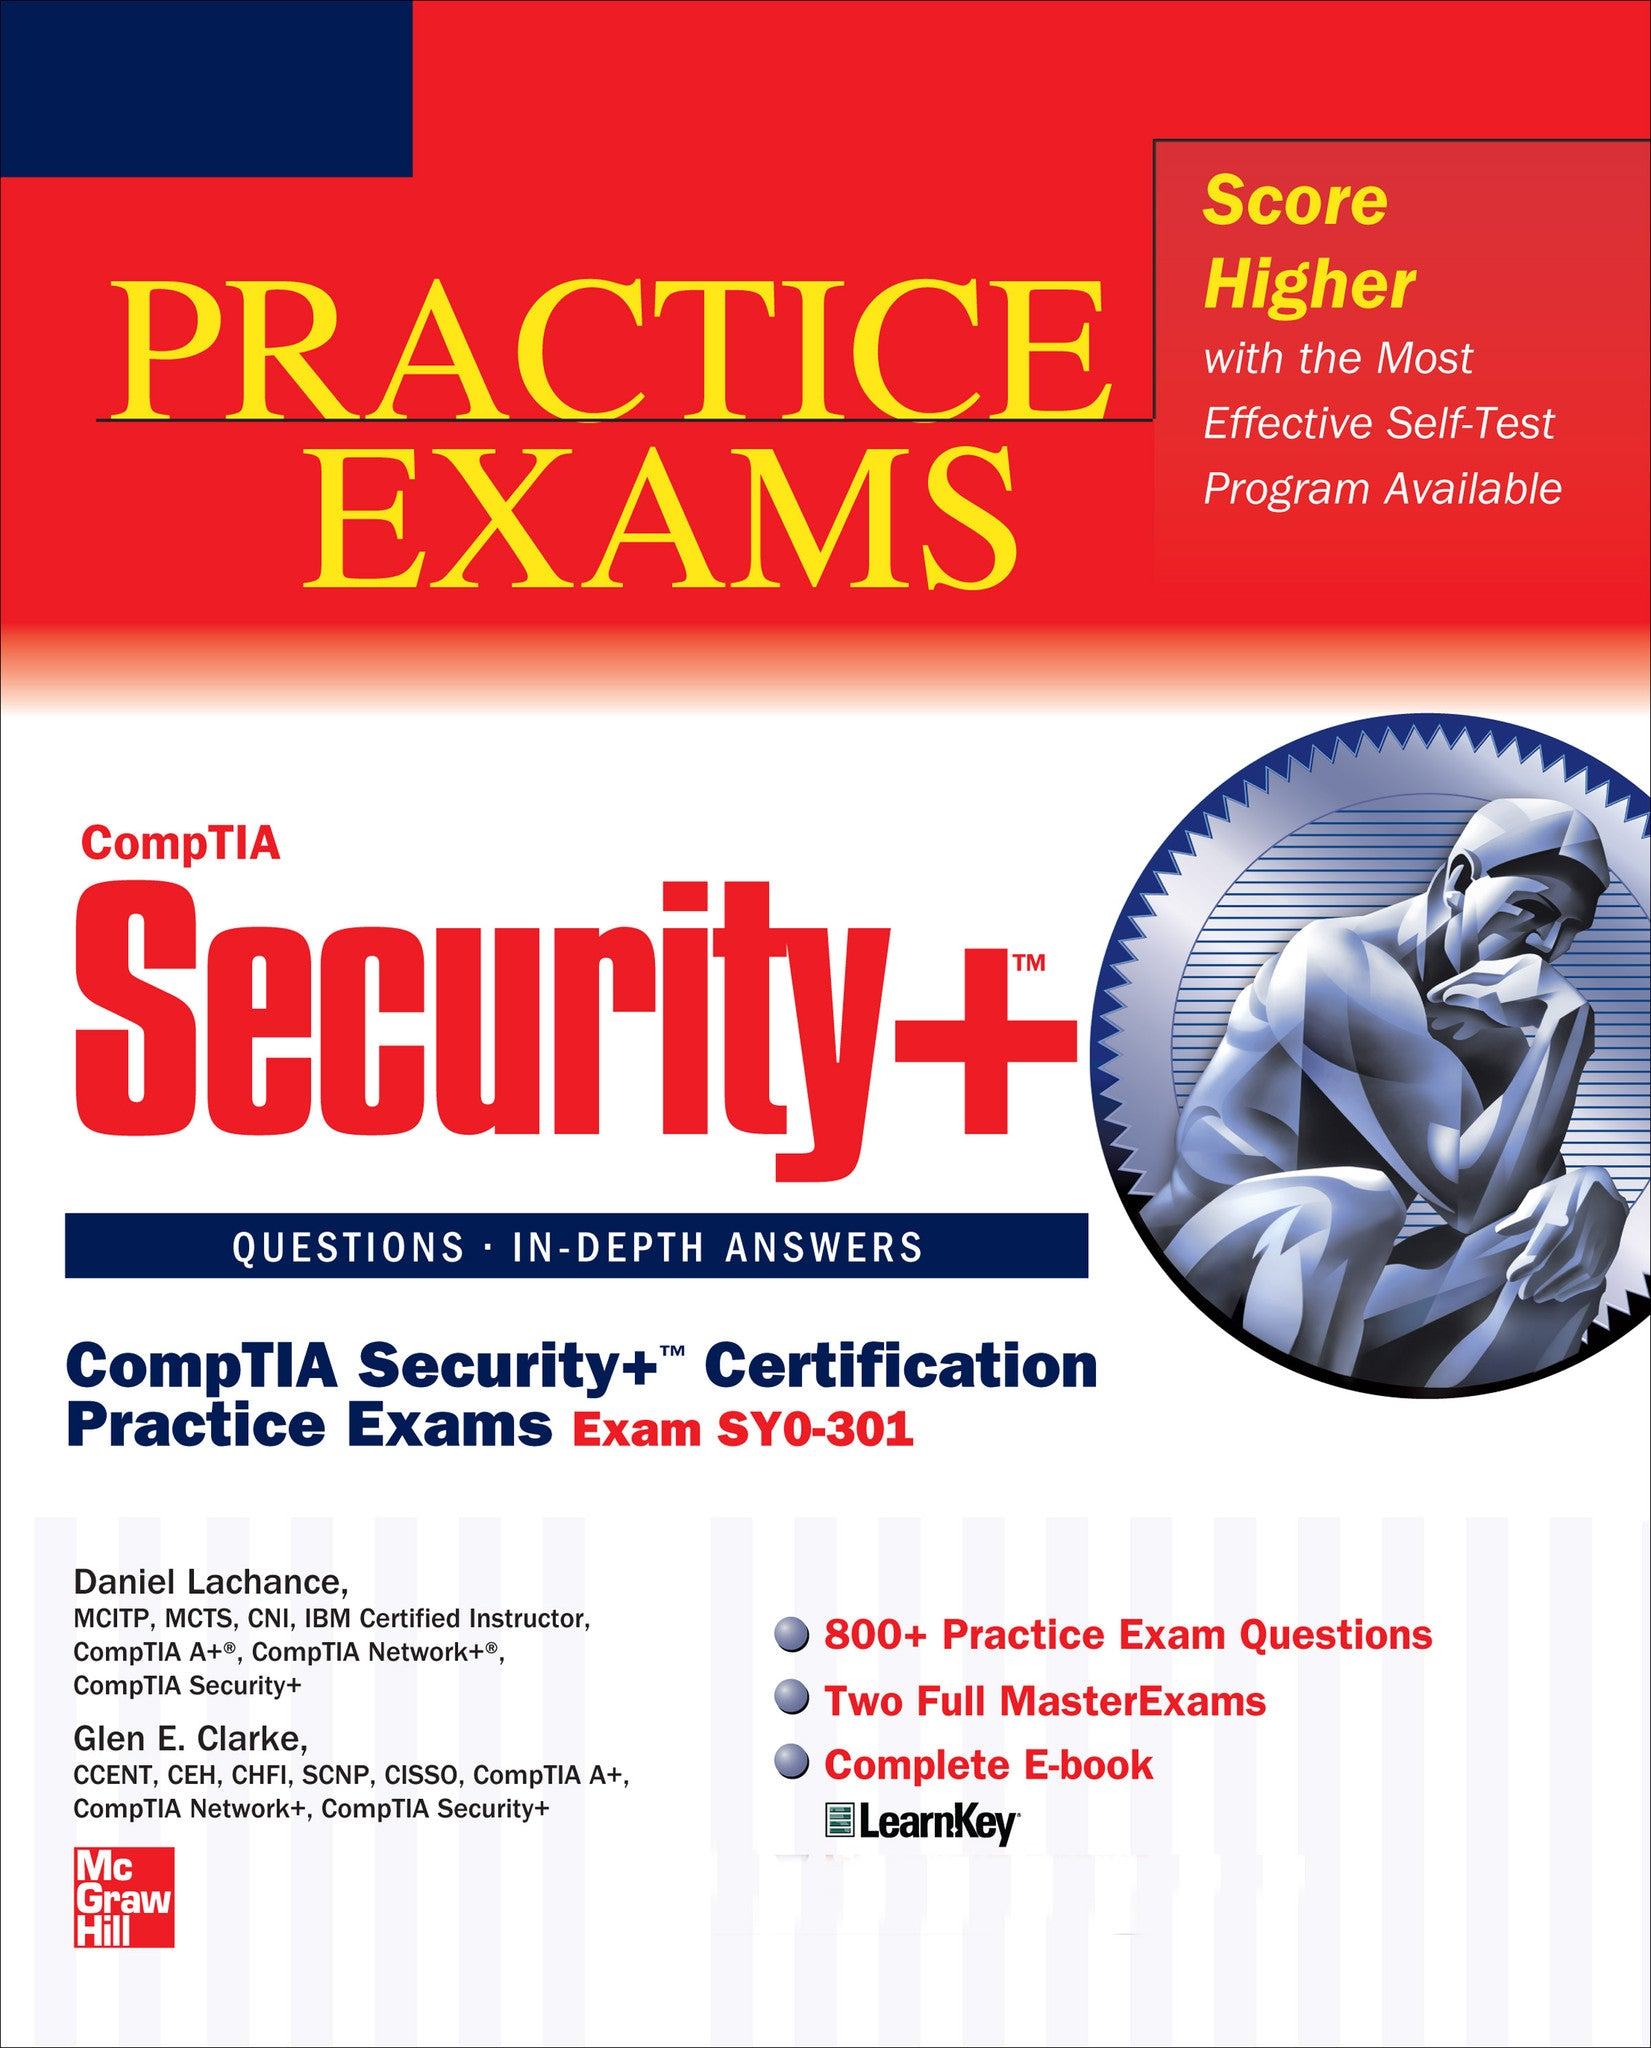 comptia security exam sy0 301 Free online comptia security+ practice test questions based on the current security+ (sy0-401) exam domains.